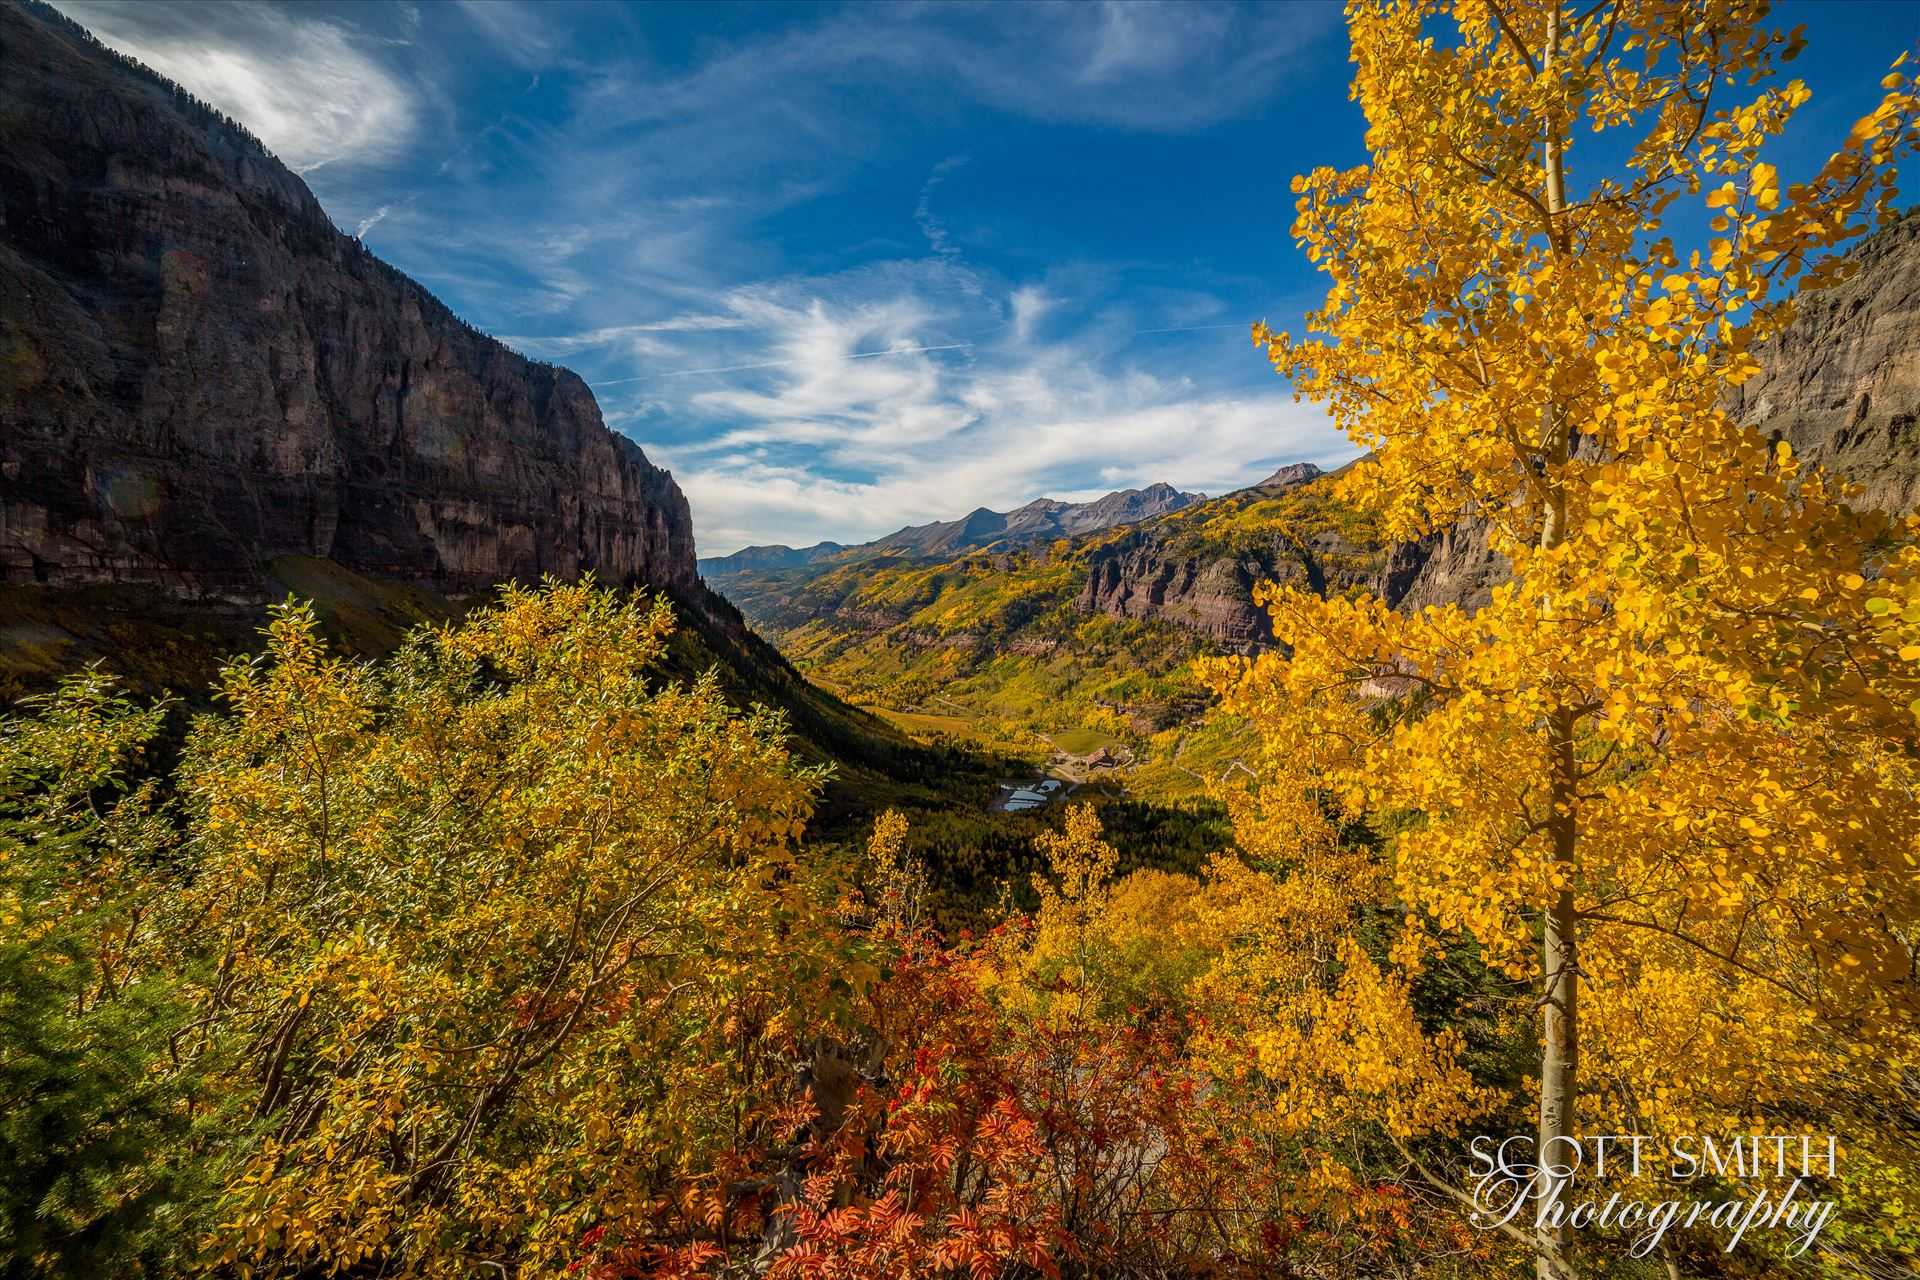 Telluride 3 - The beautiful town of Telluride from the Black Bear 4x4 trail near Bridal Veil Falls. by D Scott Smith